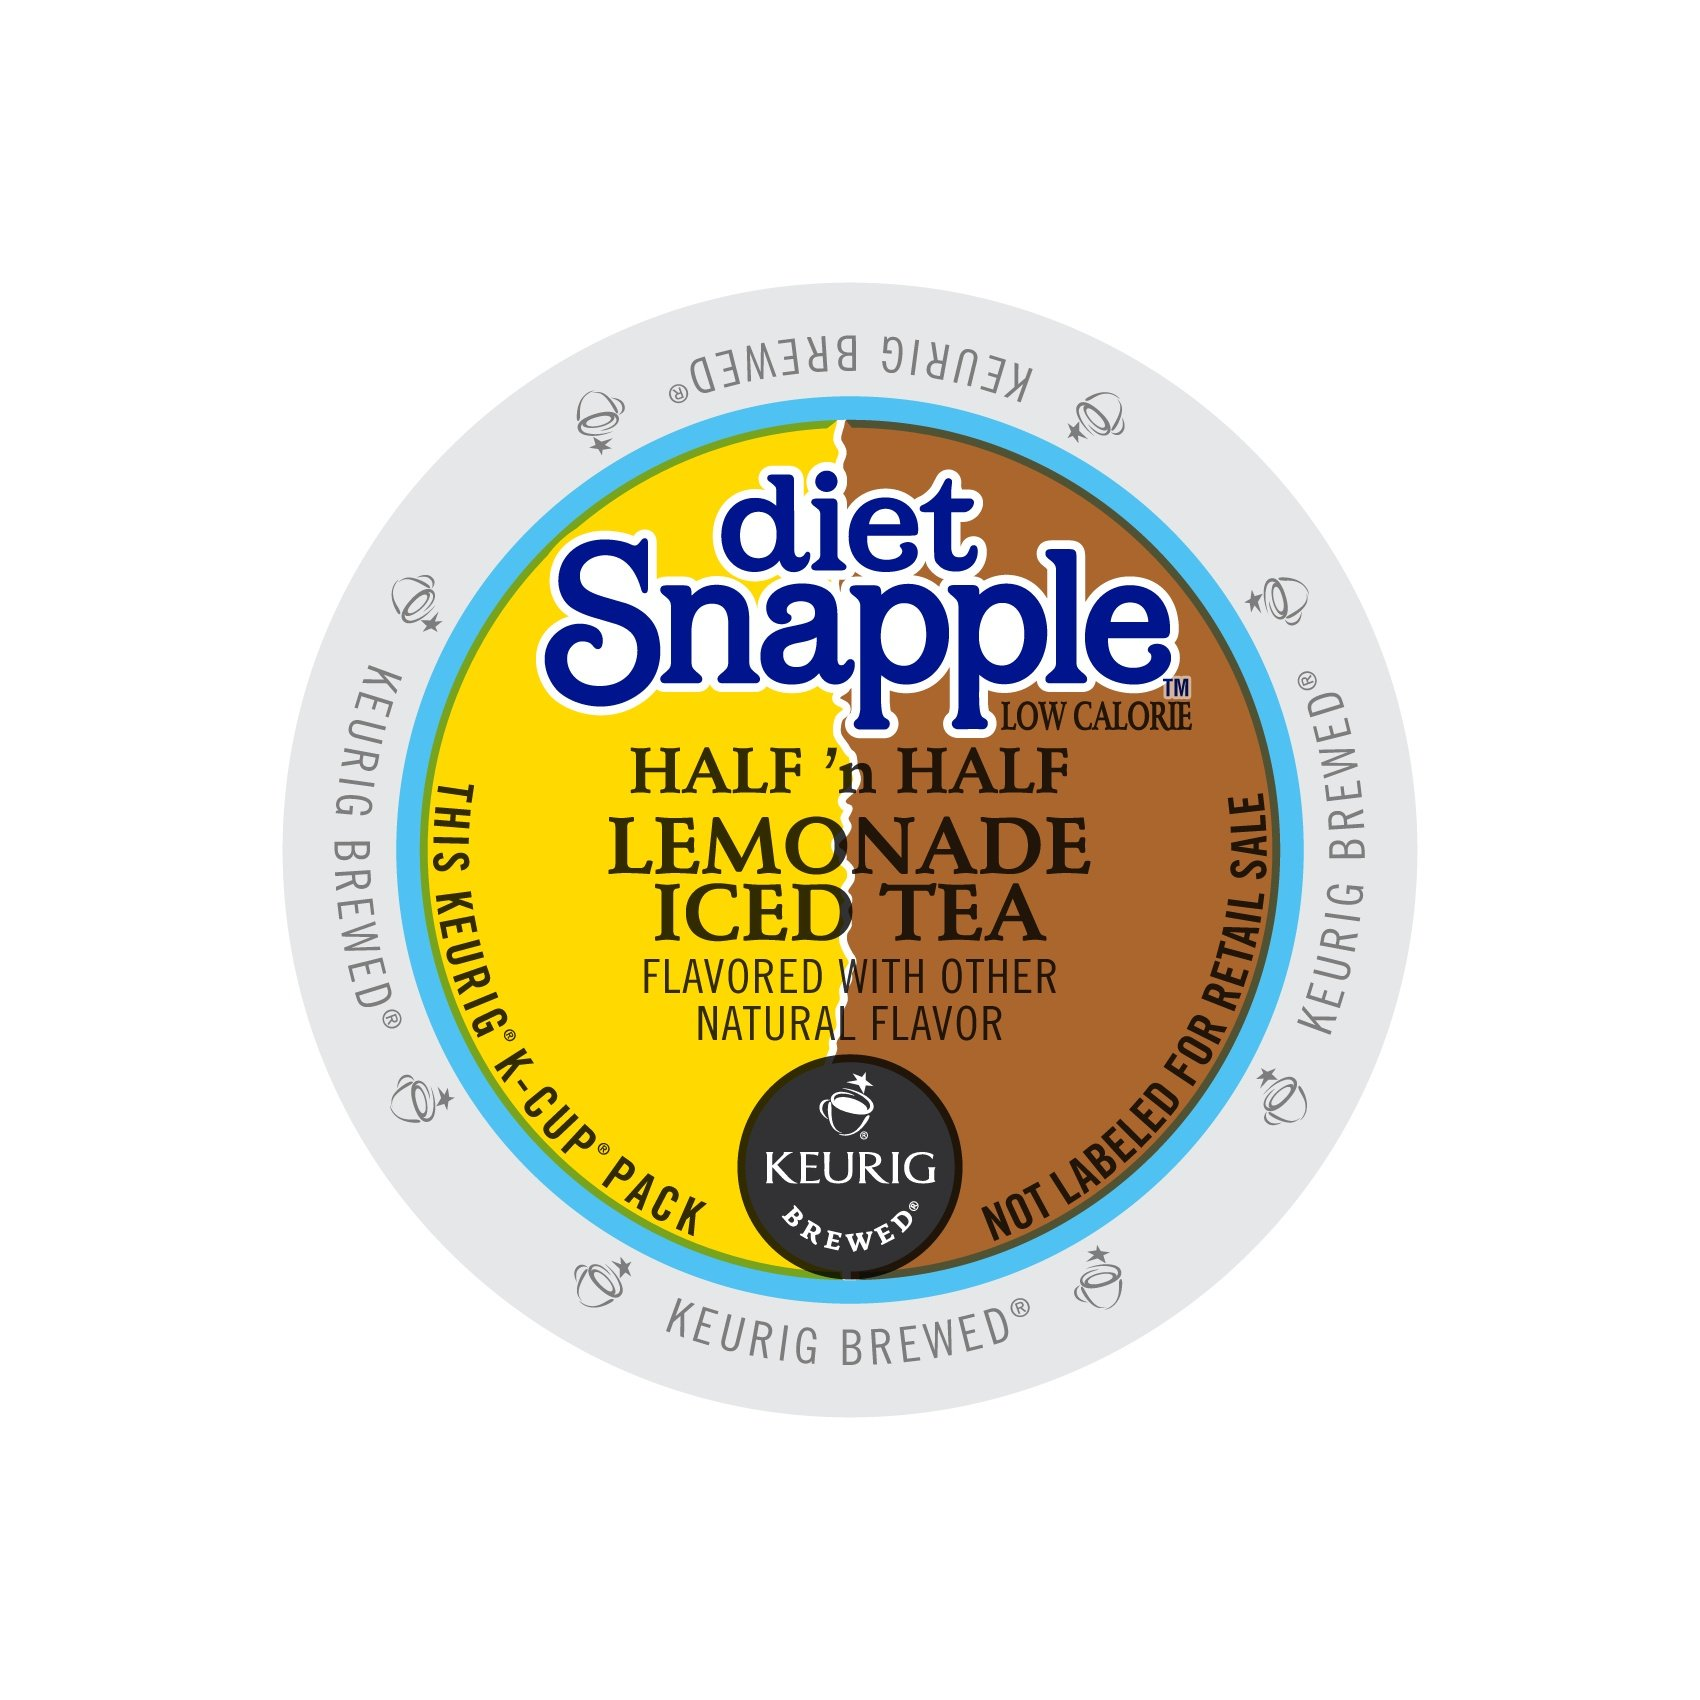 Snapple Keurig Single-Serve K-Cup Pods, Diet Half 'n Half Lemonade Iced Tea, 72 Count (6 Boxes of 12) by Snapple